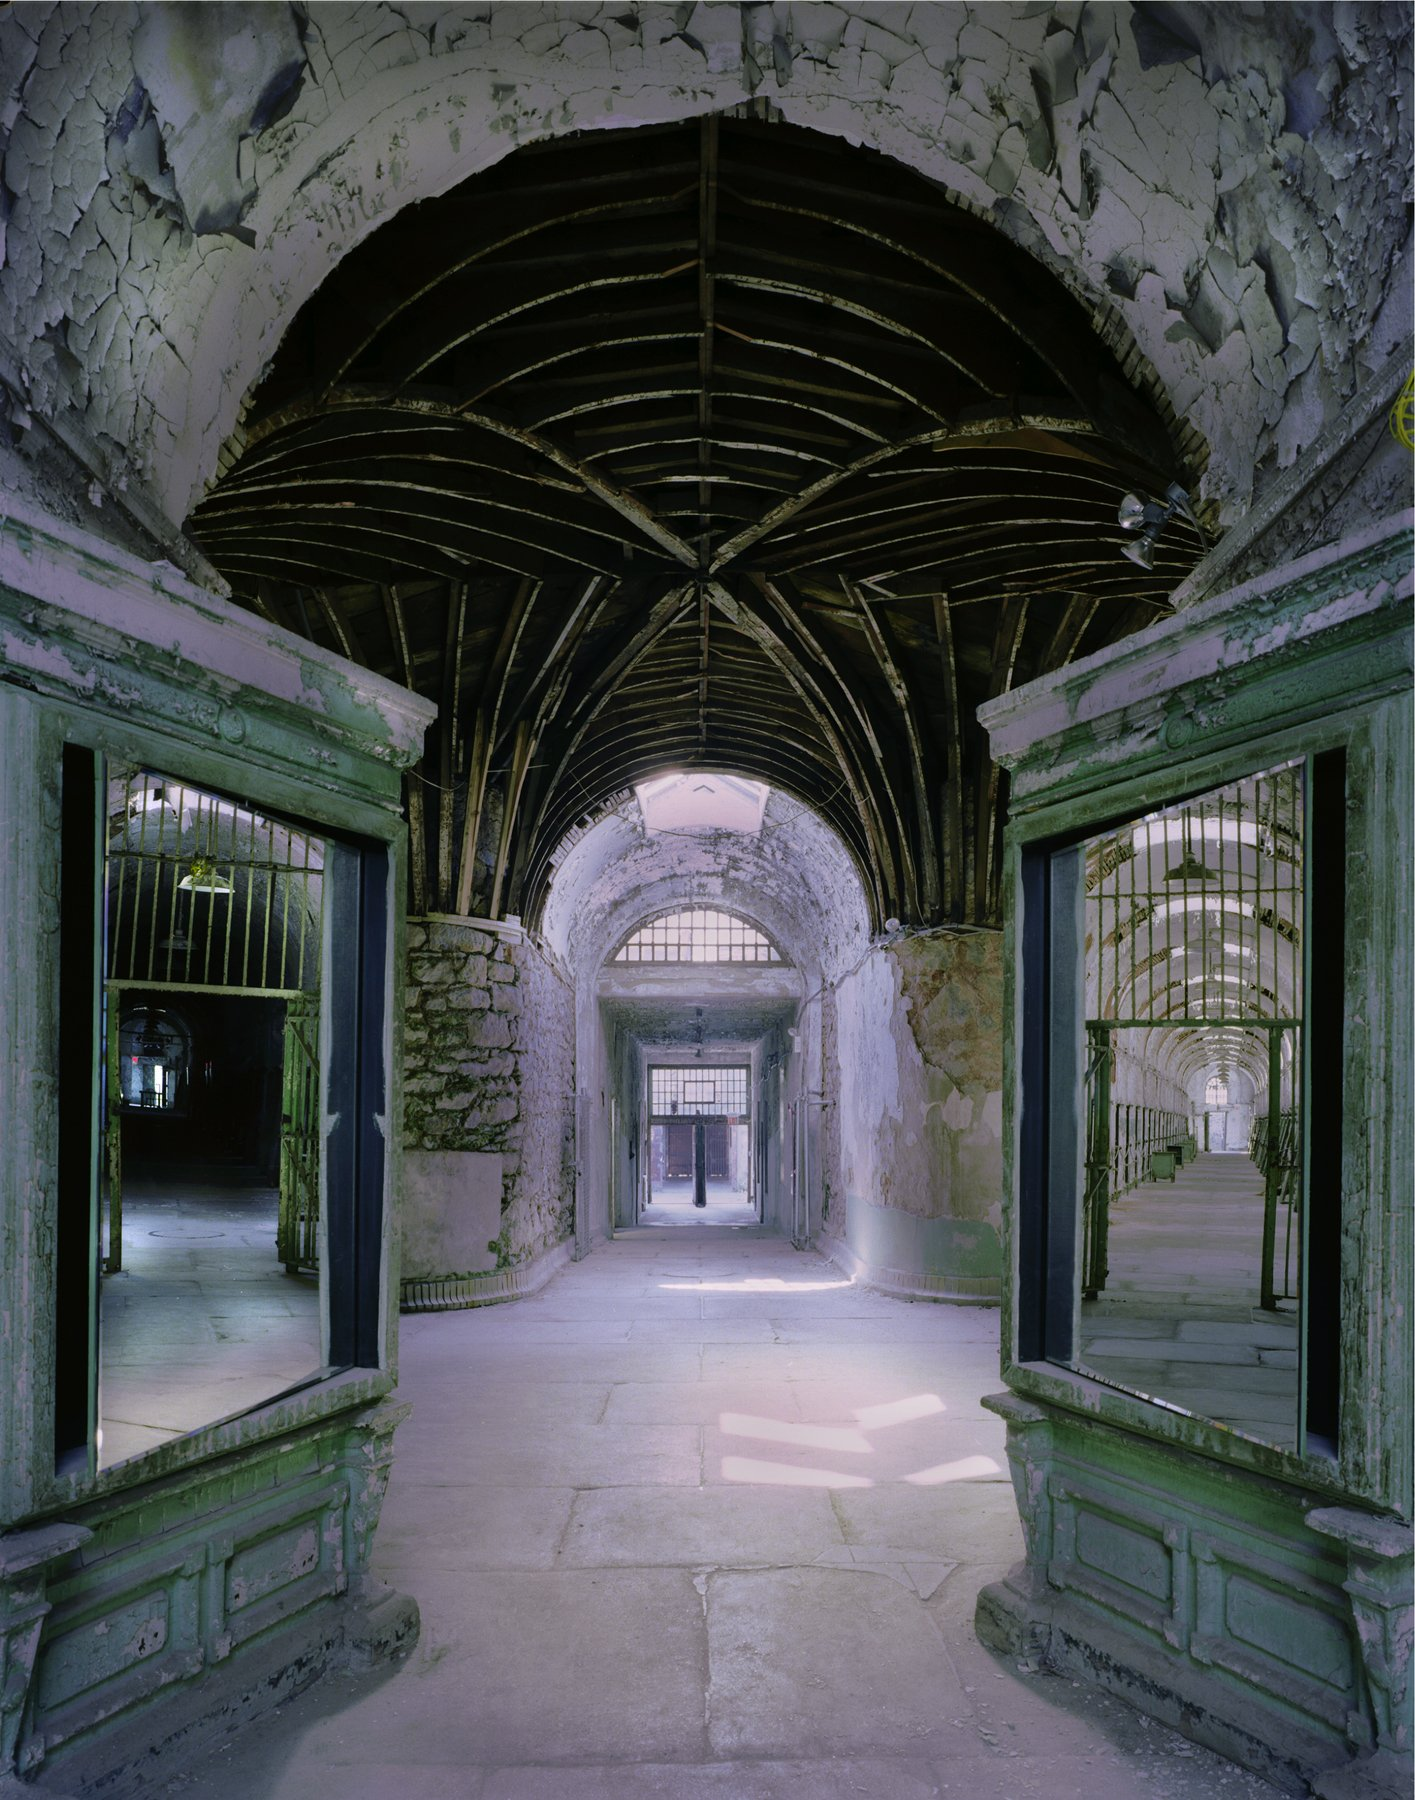 Surveillance Mirrors at Eastern State Penitentiary in Philadelphia